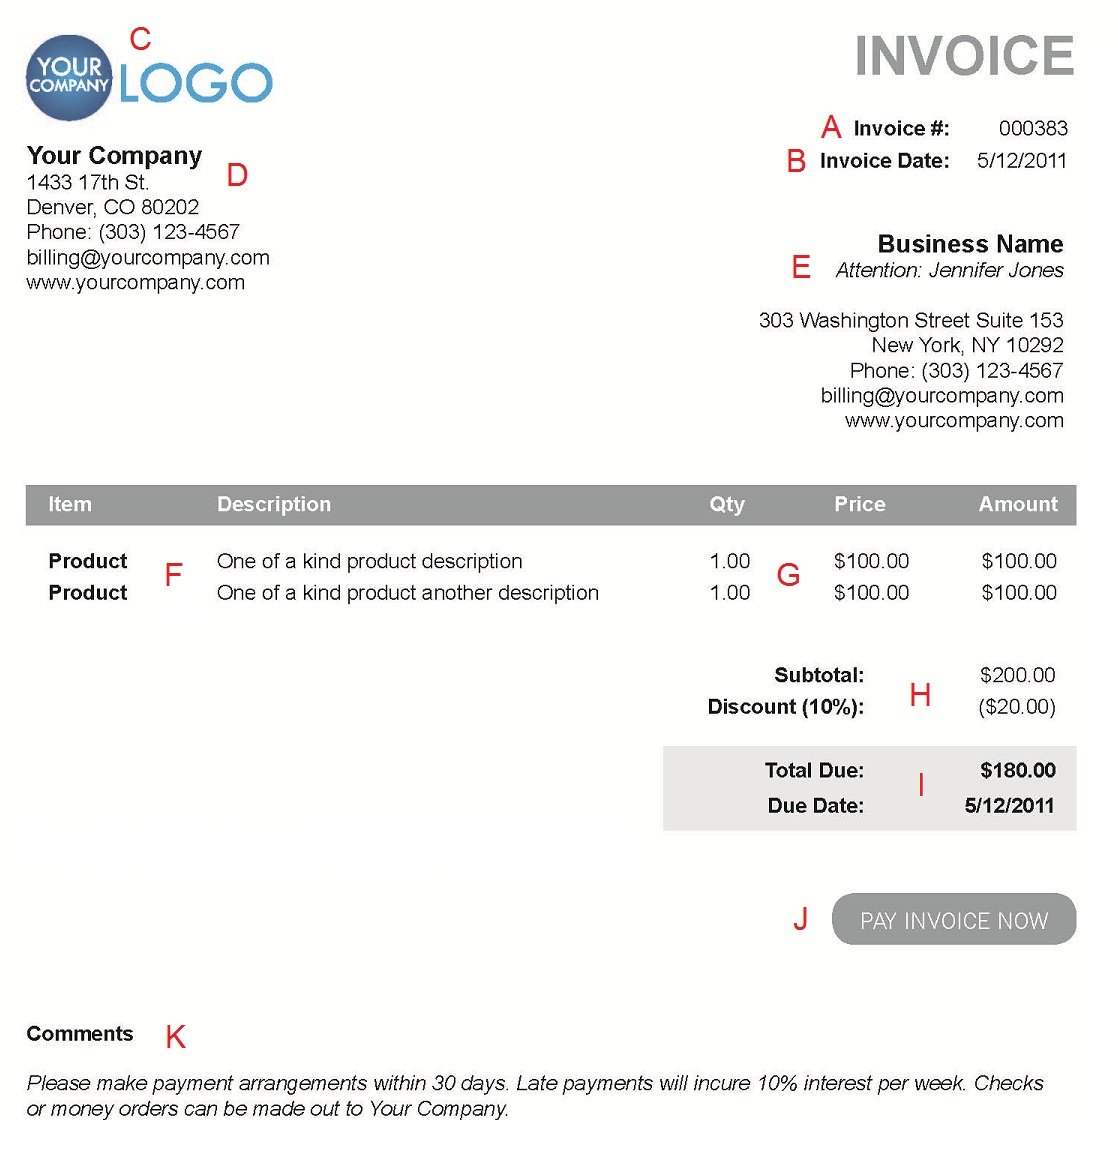 Theologygeekblogus  Nice The  Different Sections Of An Electronic Payment Invoice With Exciting A  With Breathtaking Child Care Invoice Template Also Ms Office Invoice Template In Addition Blank Auto Repair Invoice And Best Invoice Template As Well As Wordpress Invoice Plugin Additionally How To Fill Out A Invoice From Paysimplecom With Theologygeekblogus  Exciting The  Different Sections Of An Electronic Payment Invoice With Breathtaking A  And Nice Child Care Invoice Template Also Ms Office Invoice Template In Addition Blank Auto Repair Invoice From Paysimplecom